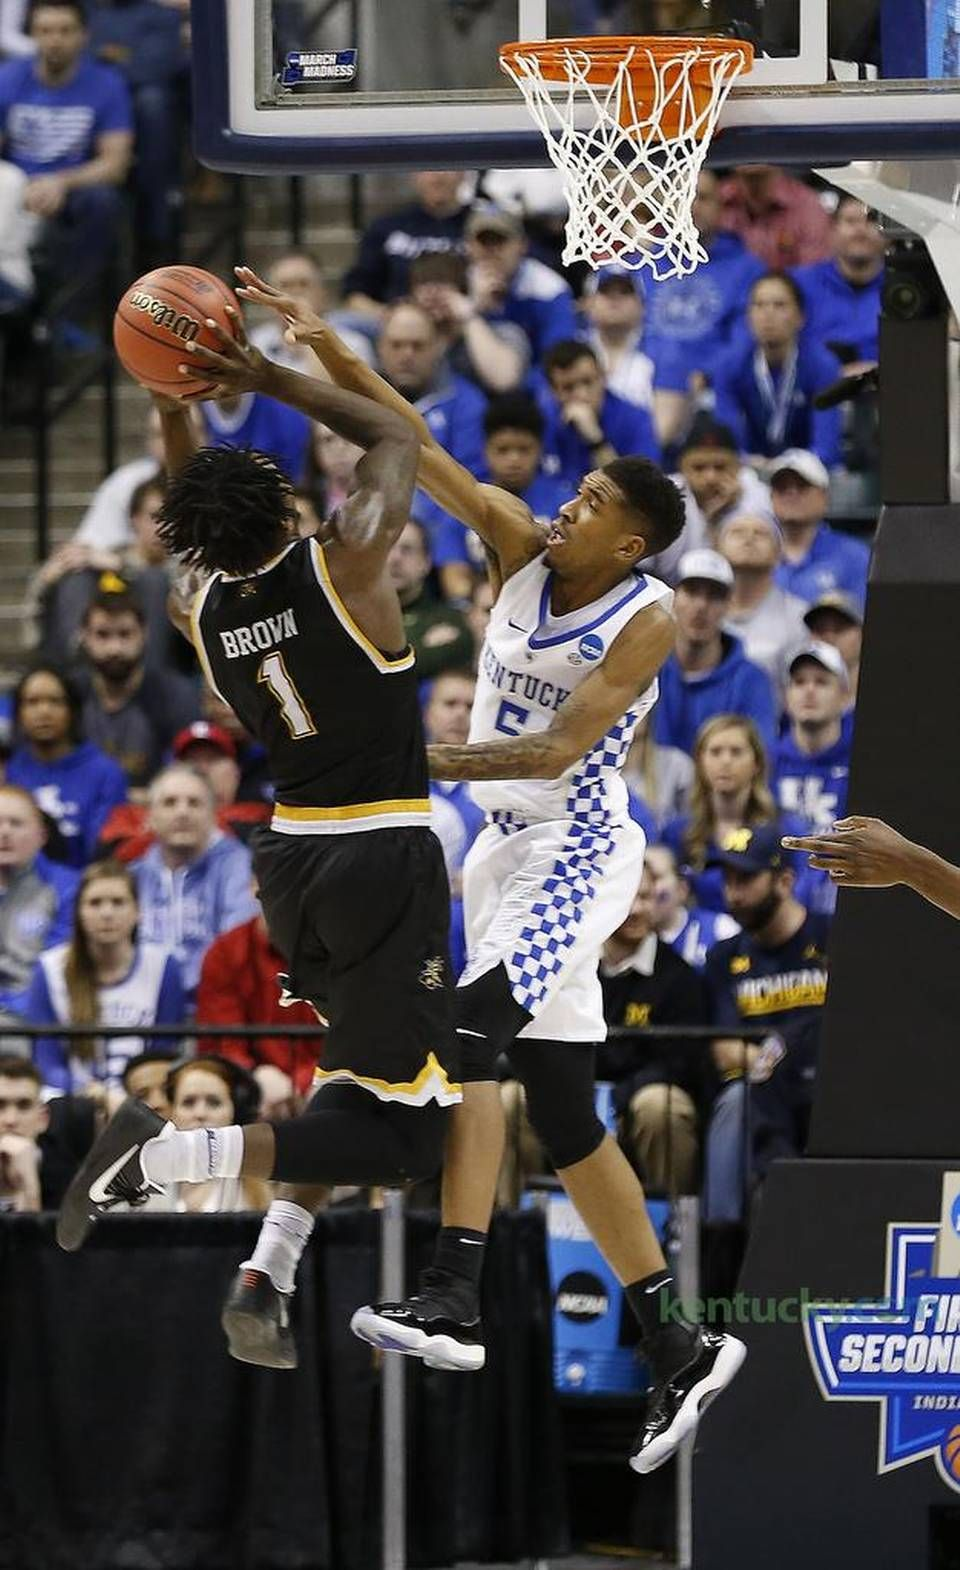 Kentucky Wildcats Guard Malik Monk 5 Blocked A Shot By Wichita State Shockers Forward Zach Brown 1 As The University Of Kentucky Played Wichita State In The